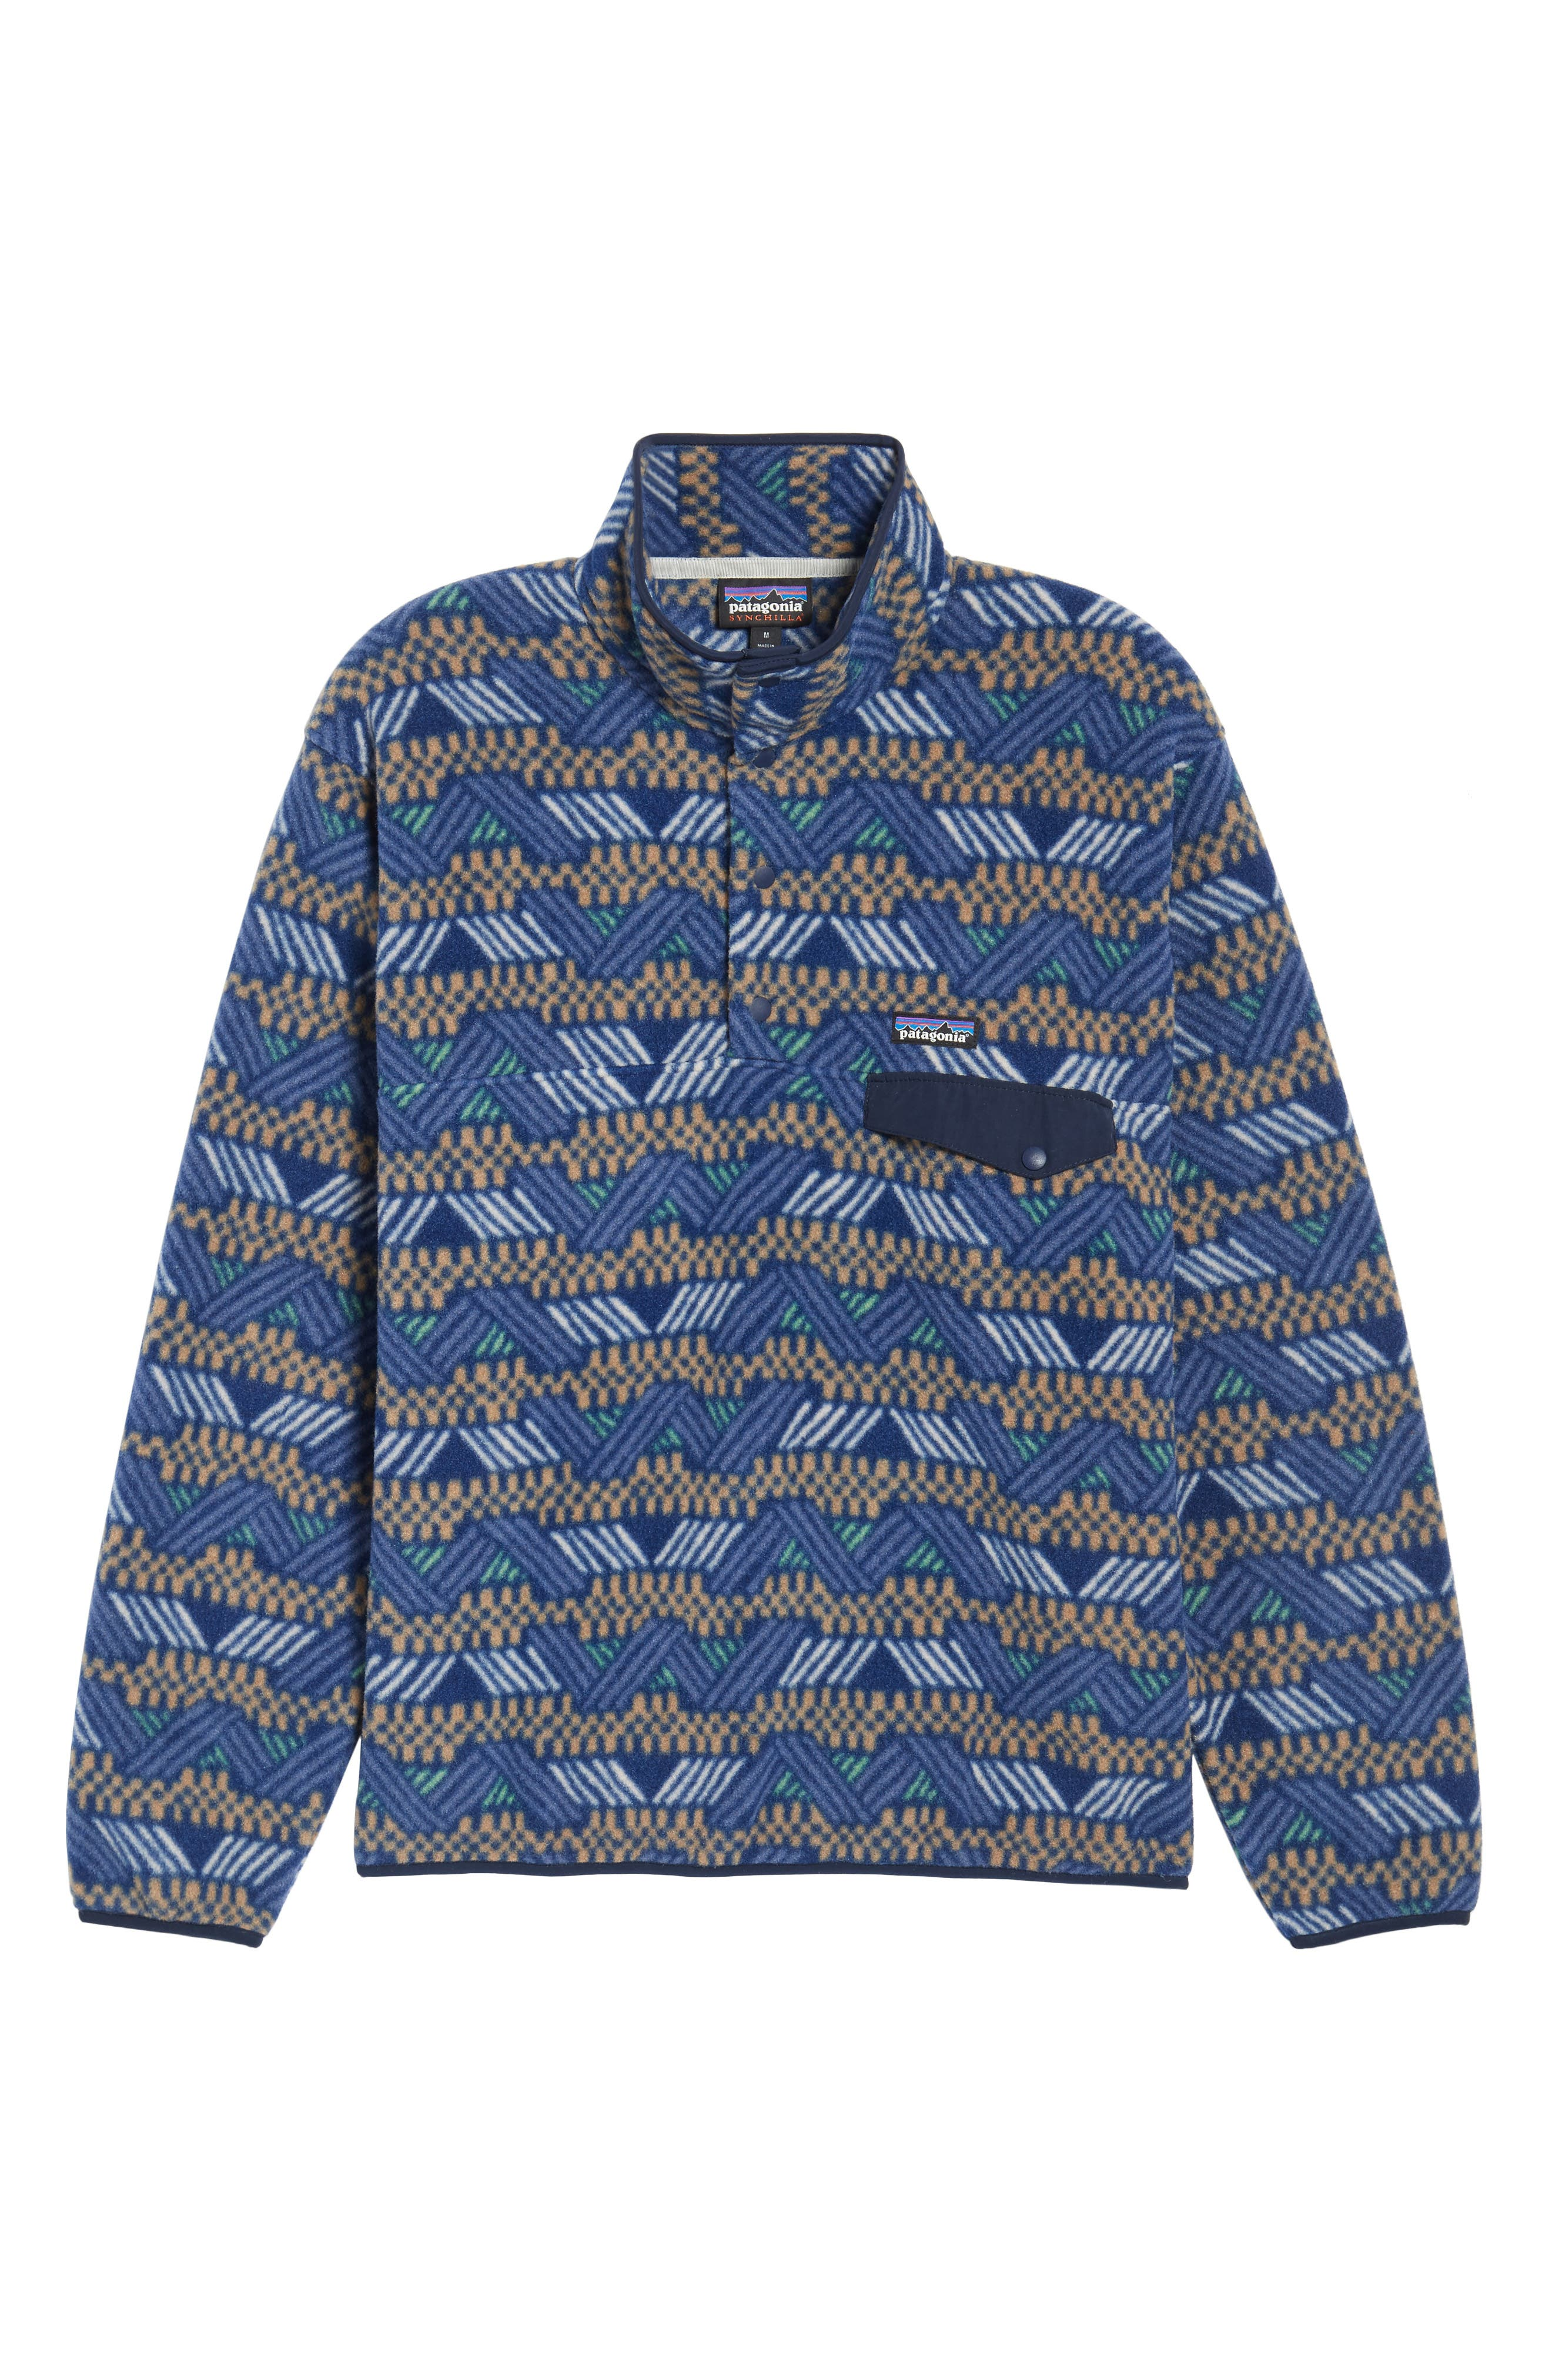 Synchilla<sup>®</sup> Snap-T<sup>®</sup> Fleece Pullover,                             Alternate thumbnail 3, color,                             Classic Navy